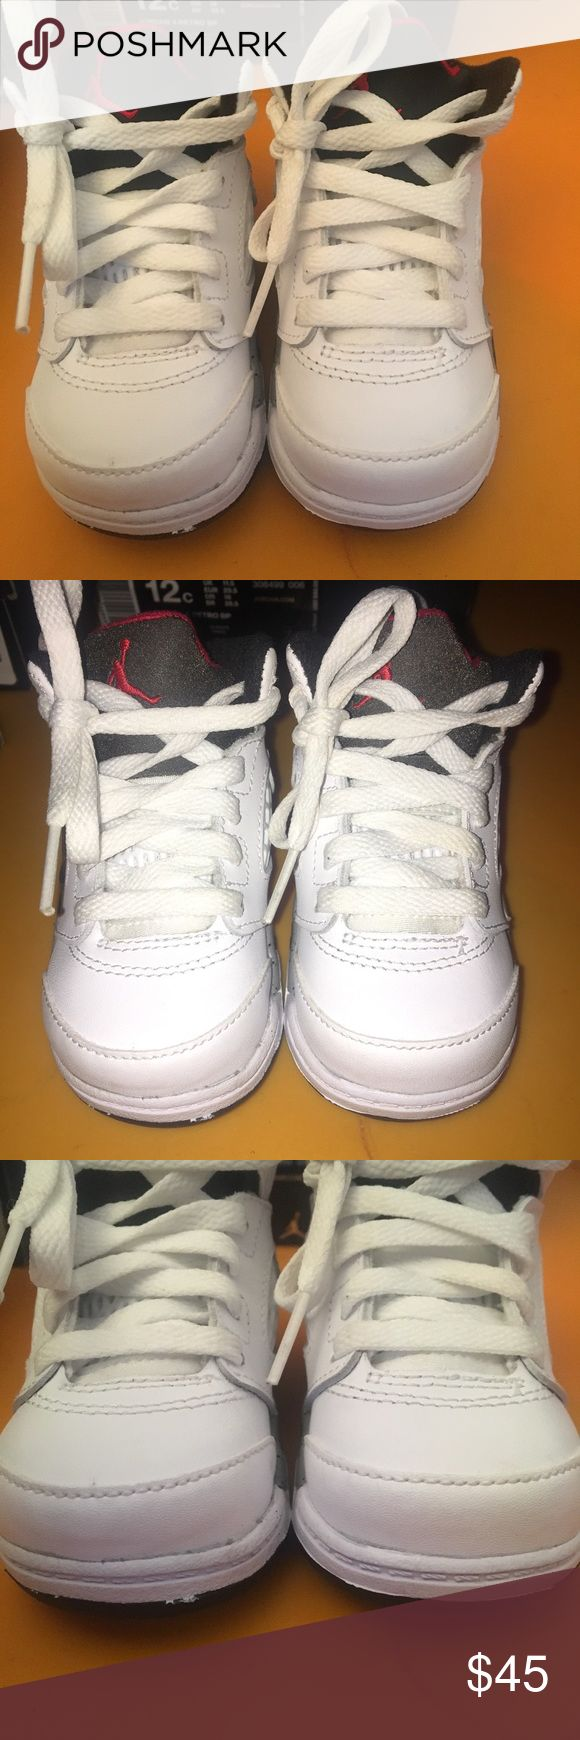 Toddler Jordans Size 5C Like new condition. Comes with original box Jordan Shoes Sneakers